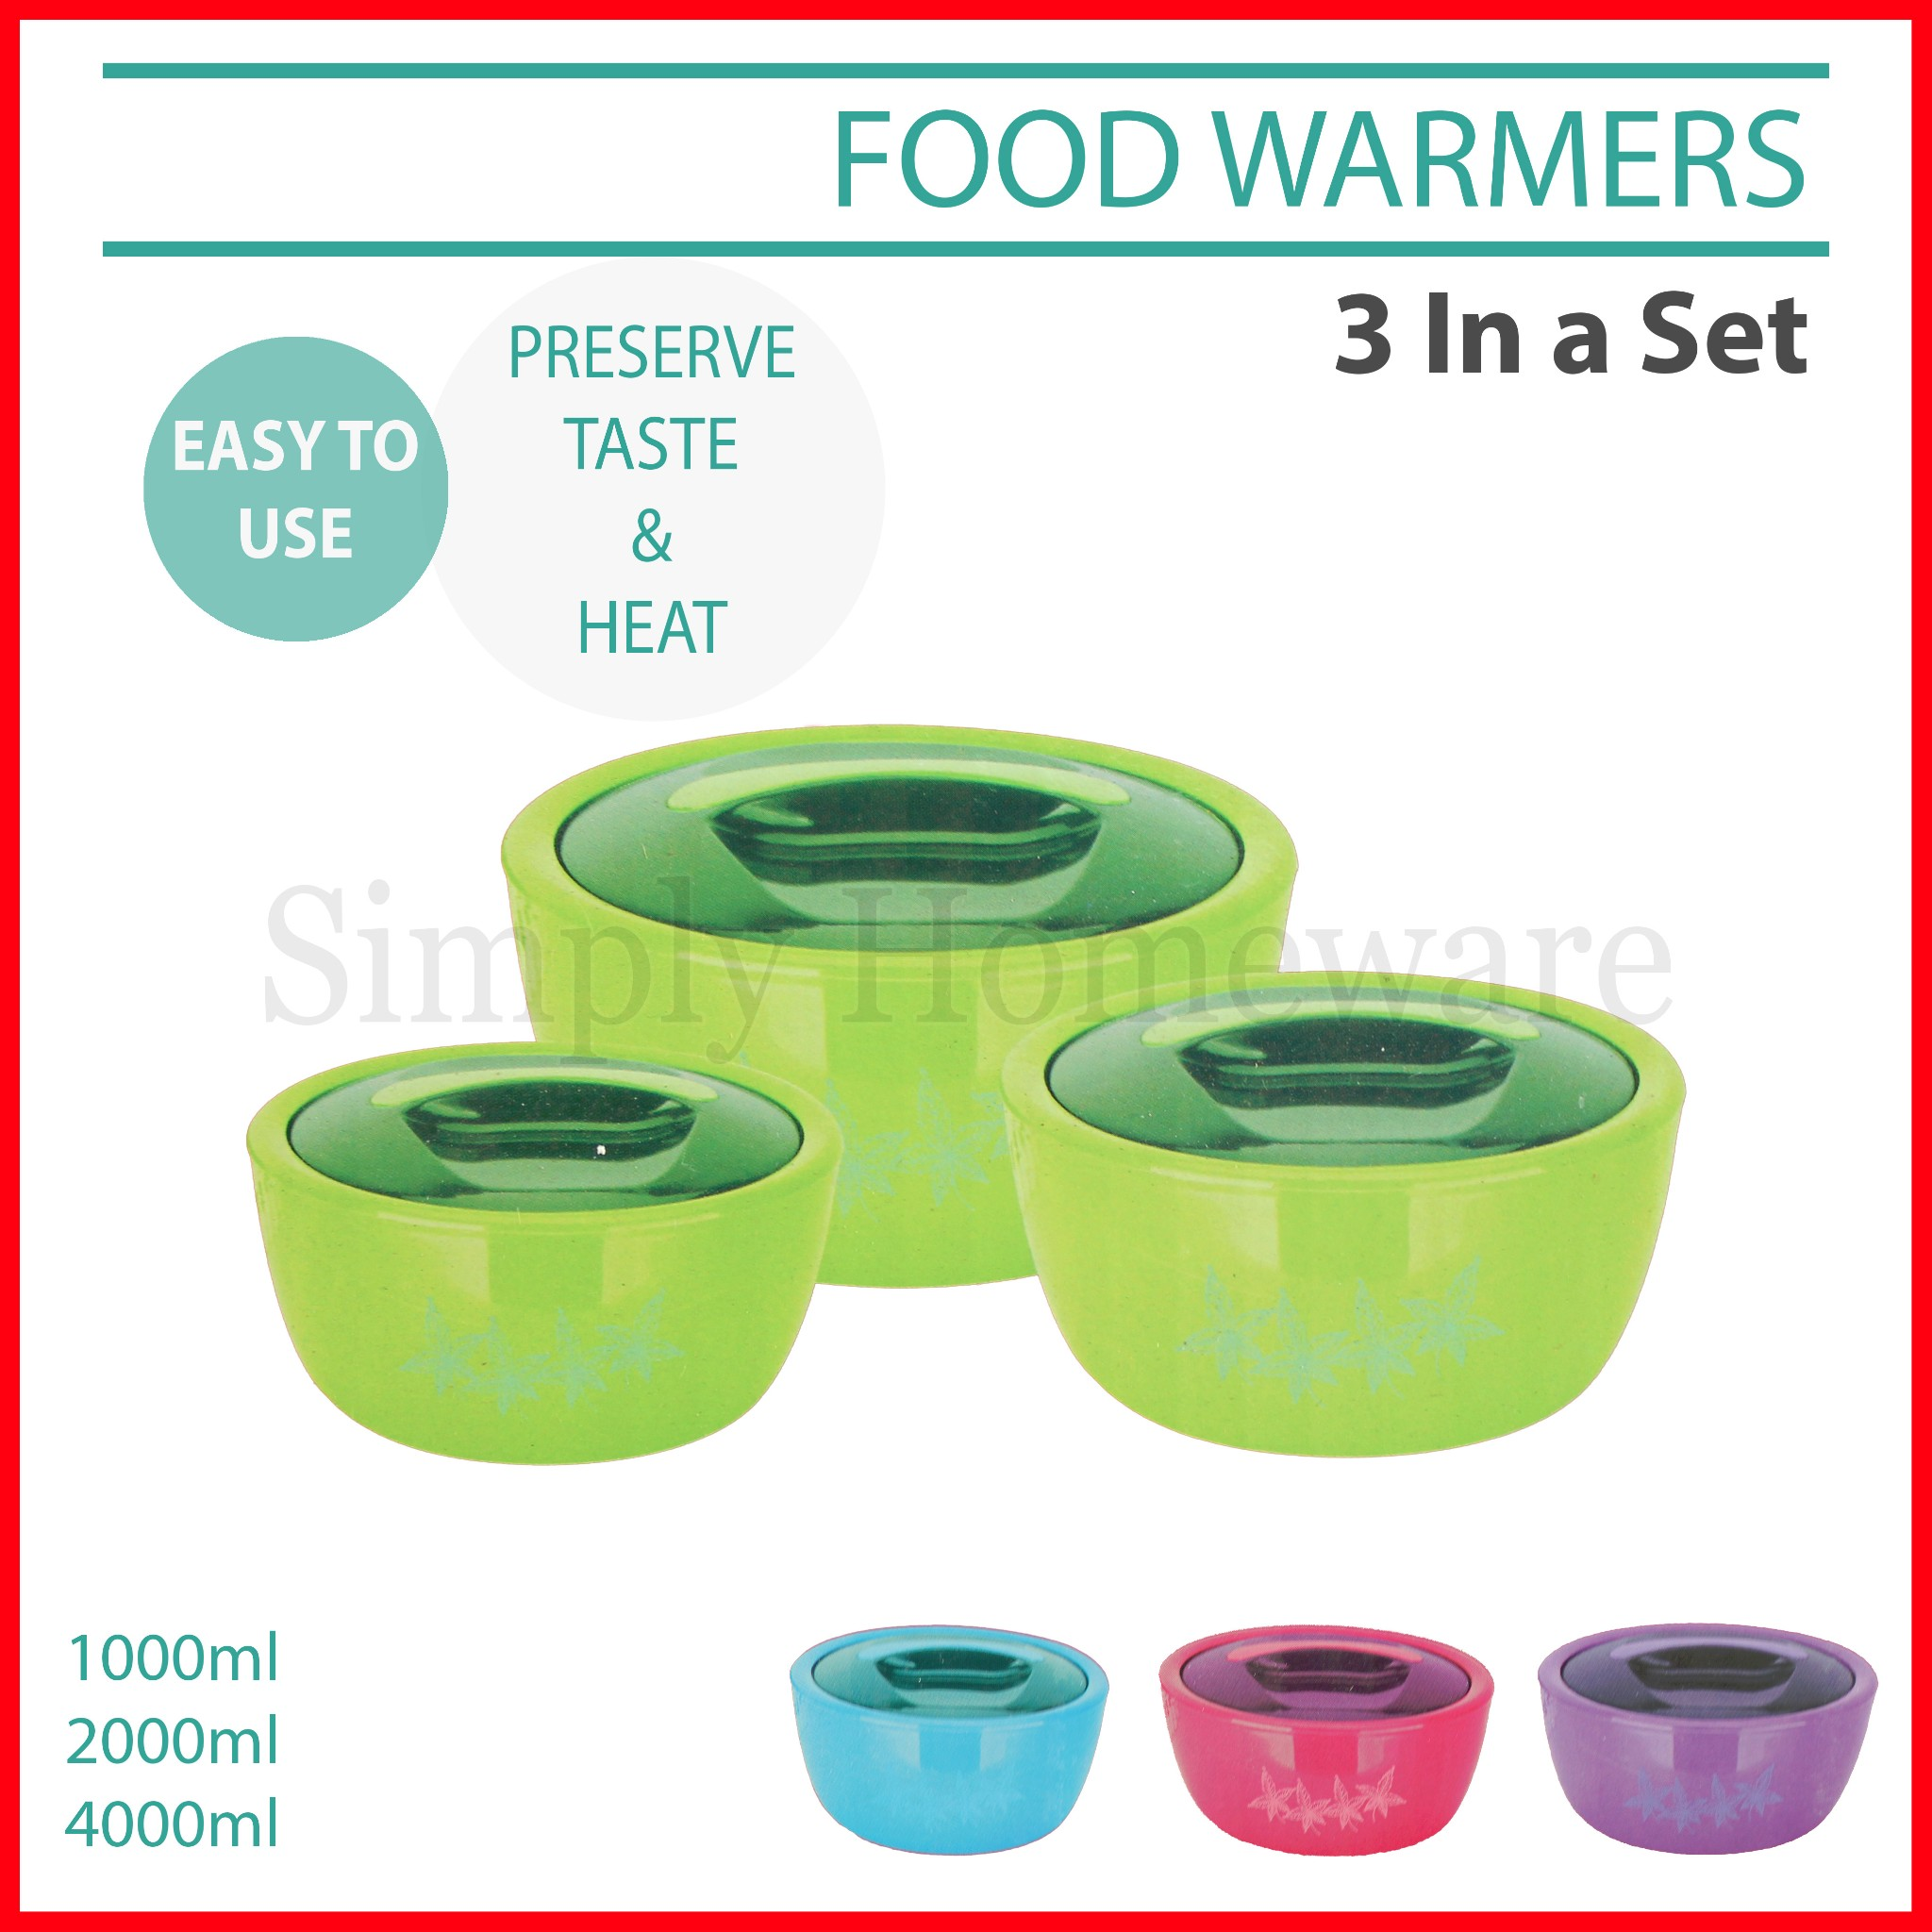 food warmers 3 in a set